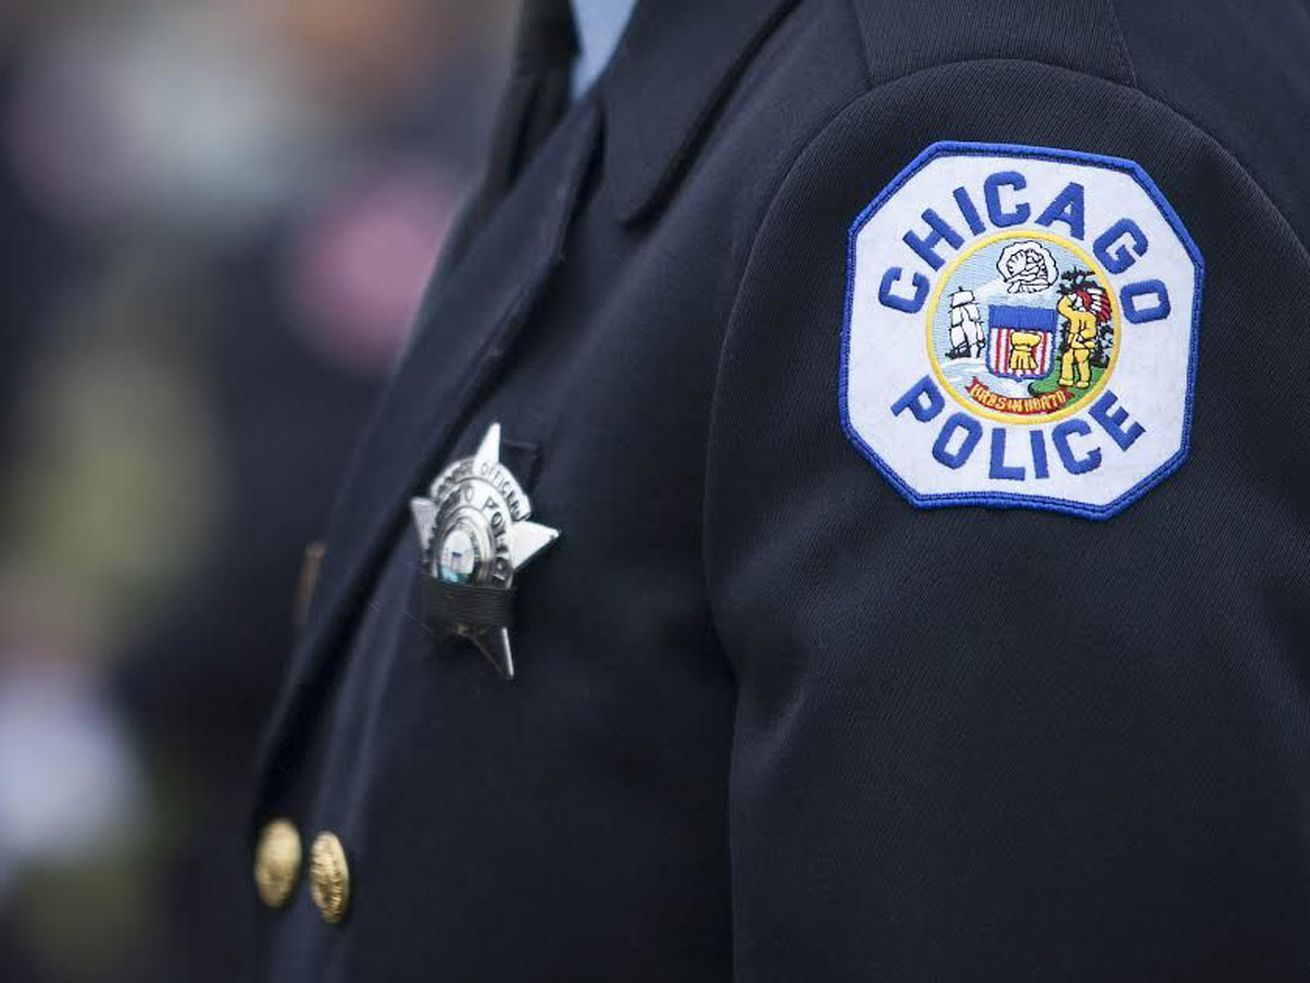 Chicago police are warning businesses of three reported burglaries in May in Lincoln Park.